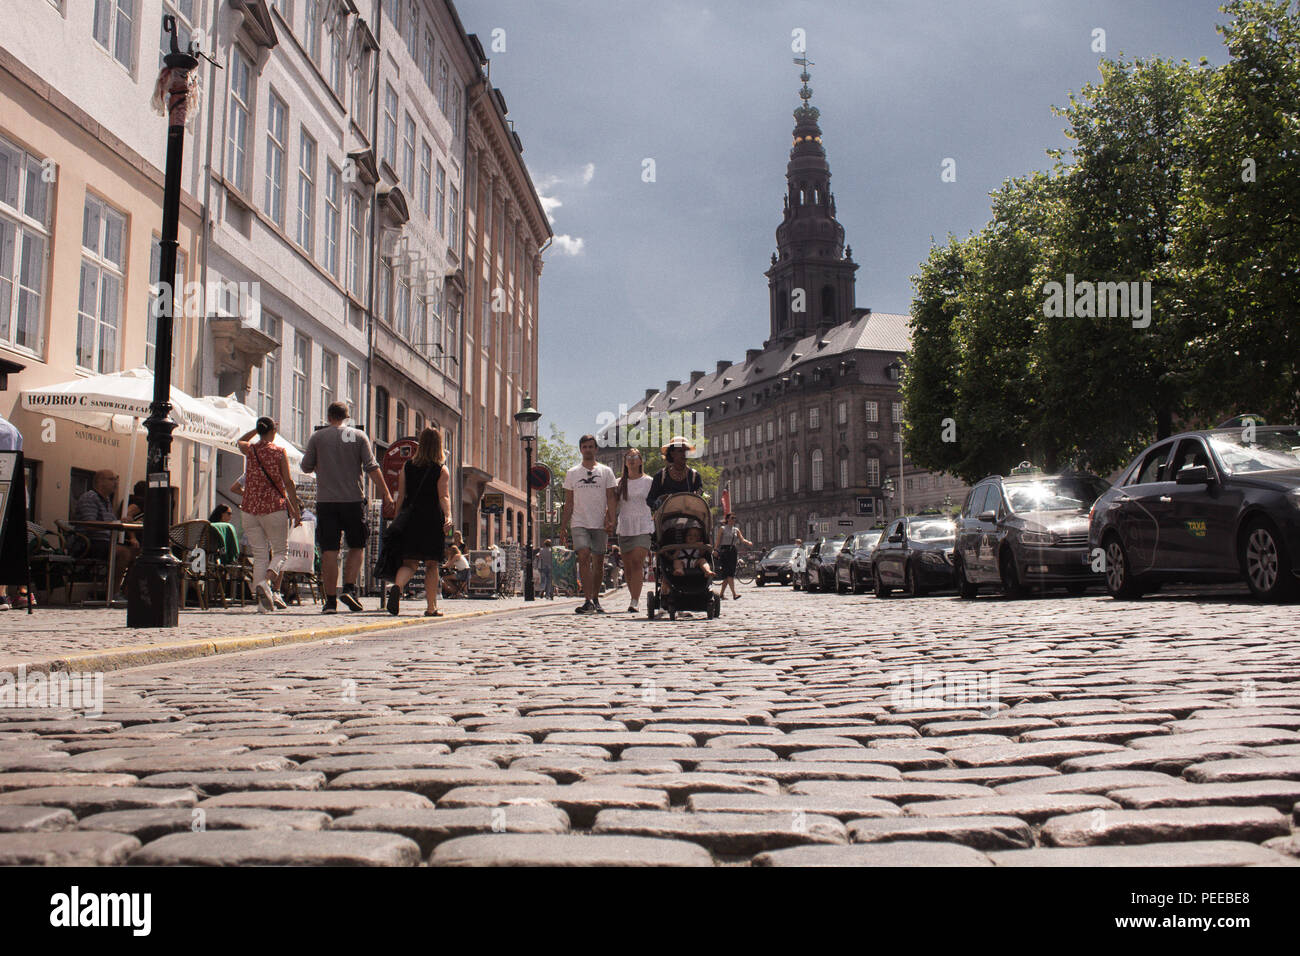 Looking at Christiansborg Palace from Højbro Pl, Copenhagen Denmark - Stock Image